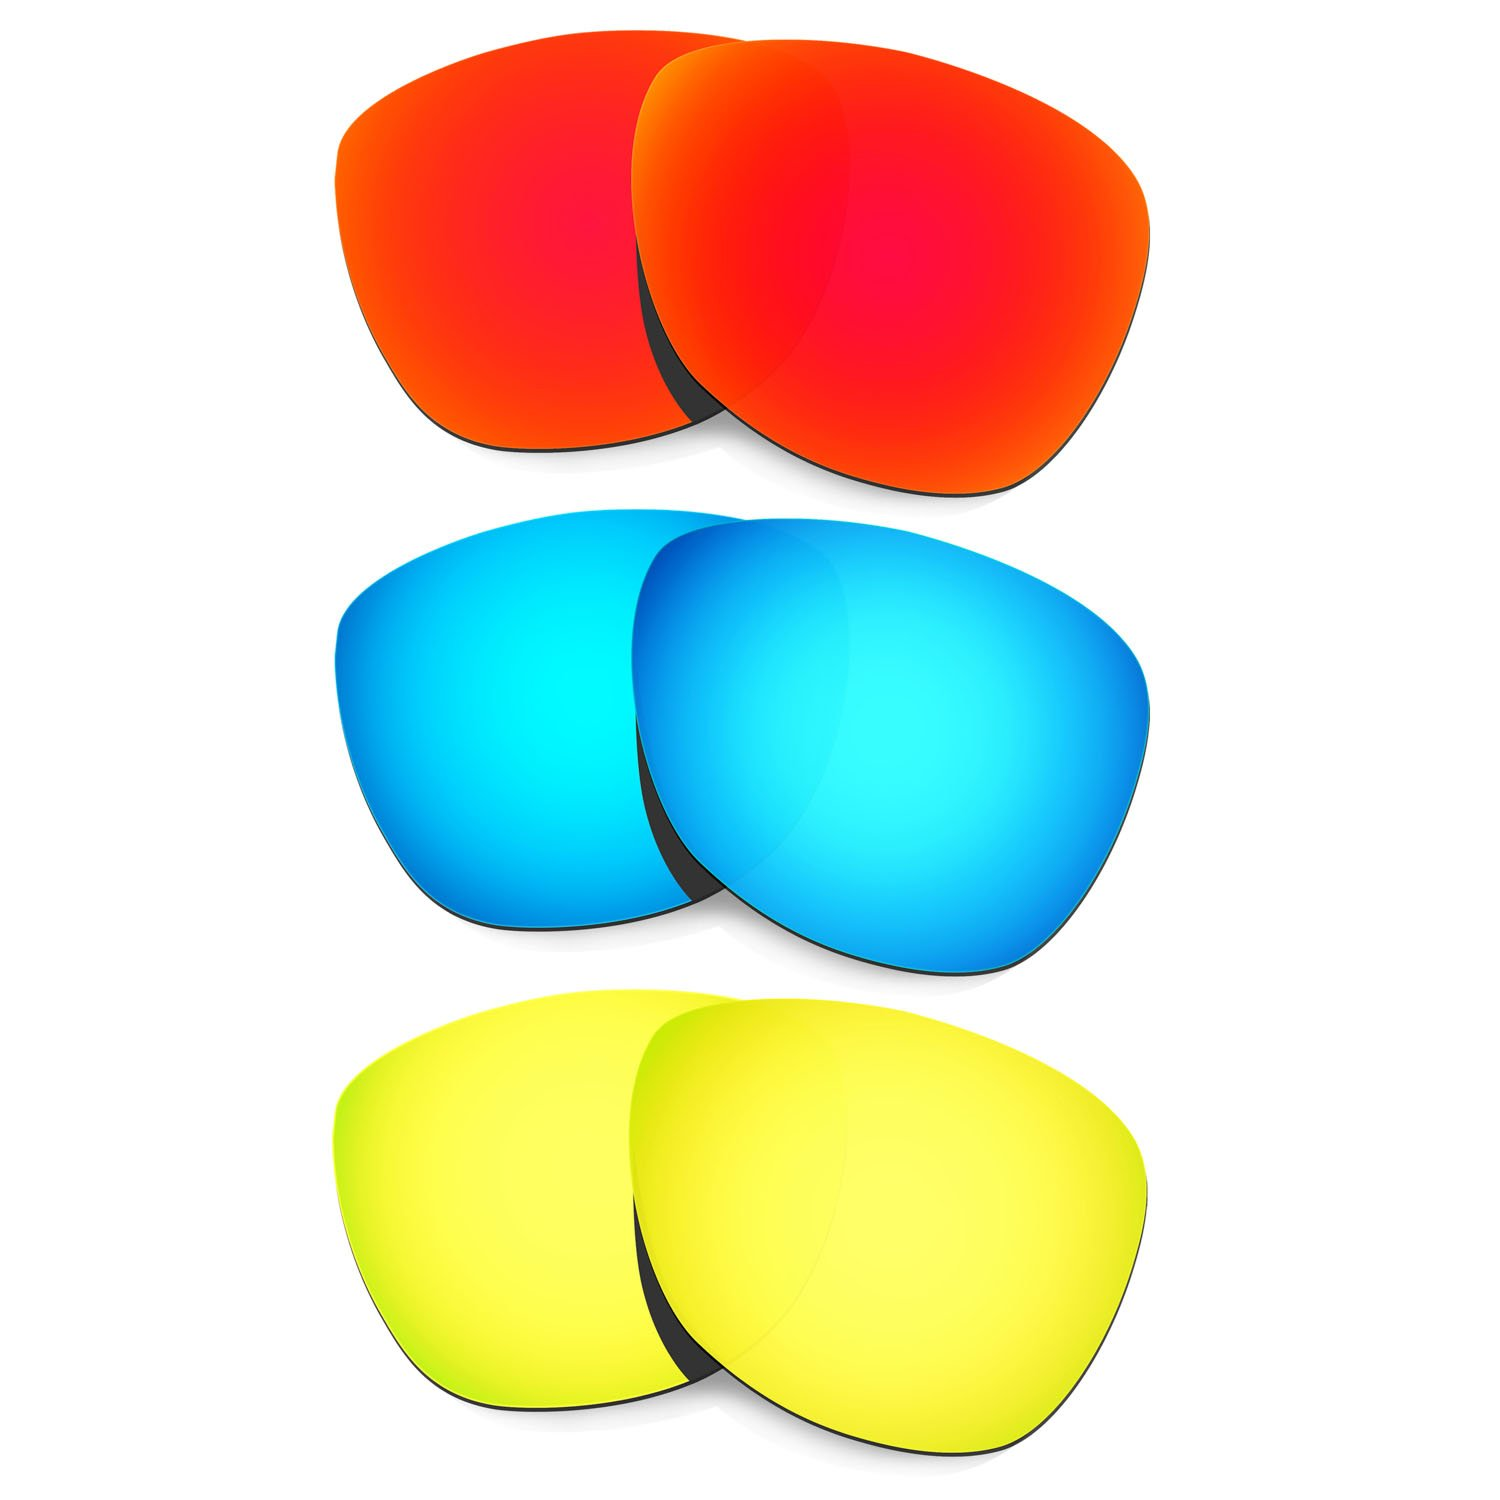 Hkuco Plus Mens Replacement Lenses For Oakley Frogskins Sunglasses Red/Blue/24K Gold Polarized